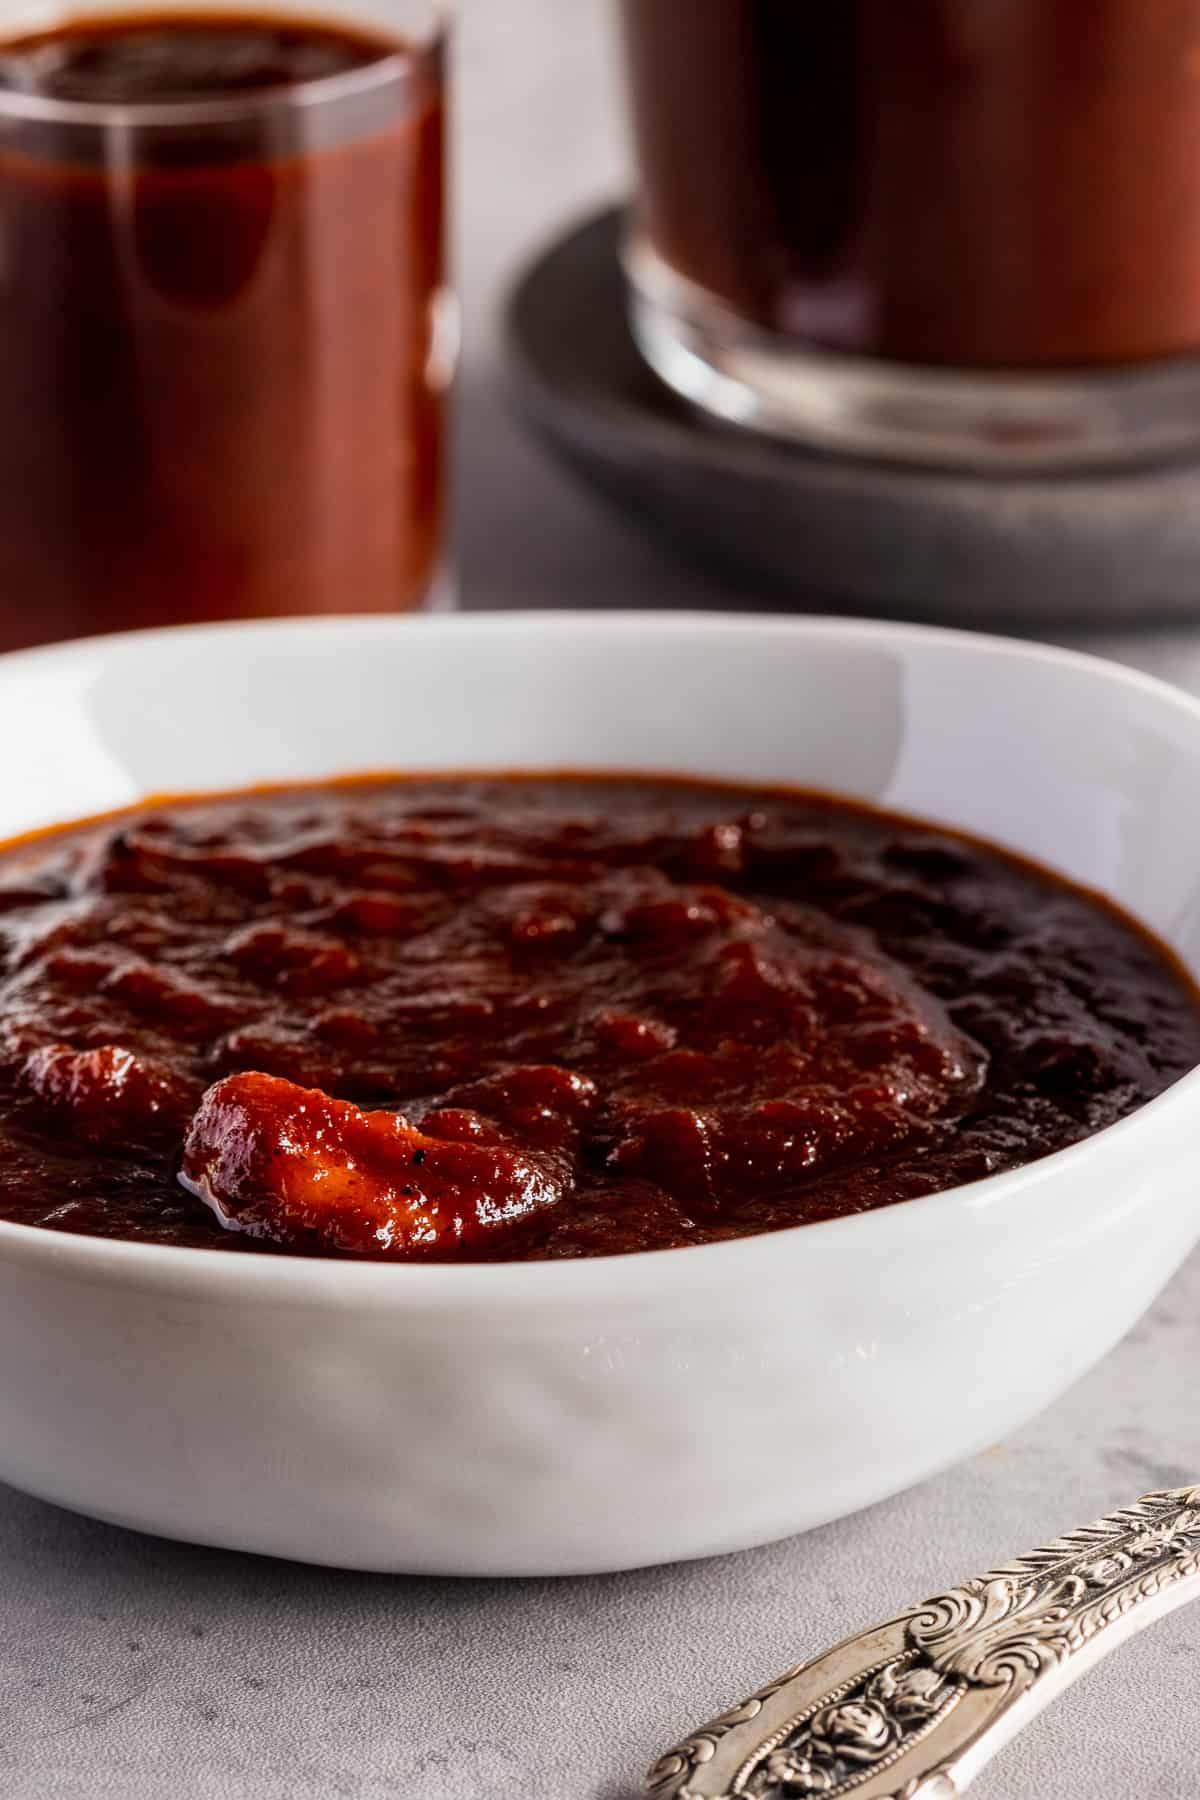 bowl of bbq sauce with clove of garlic visible